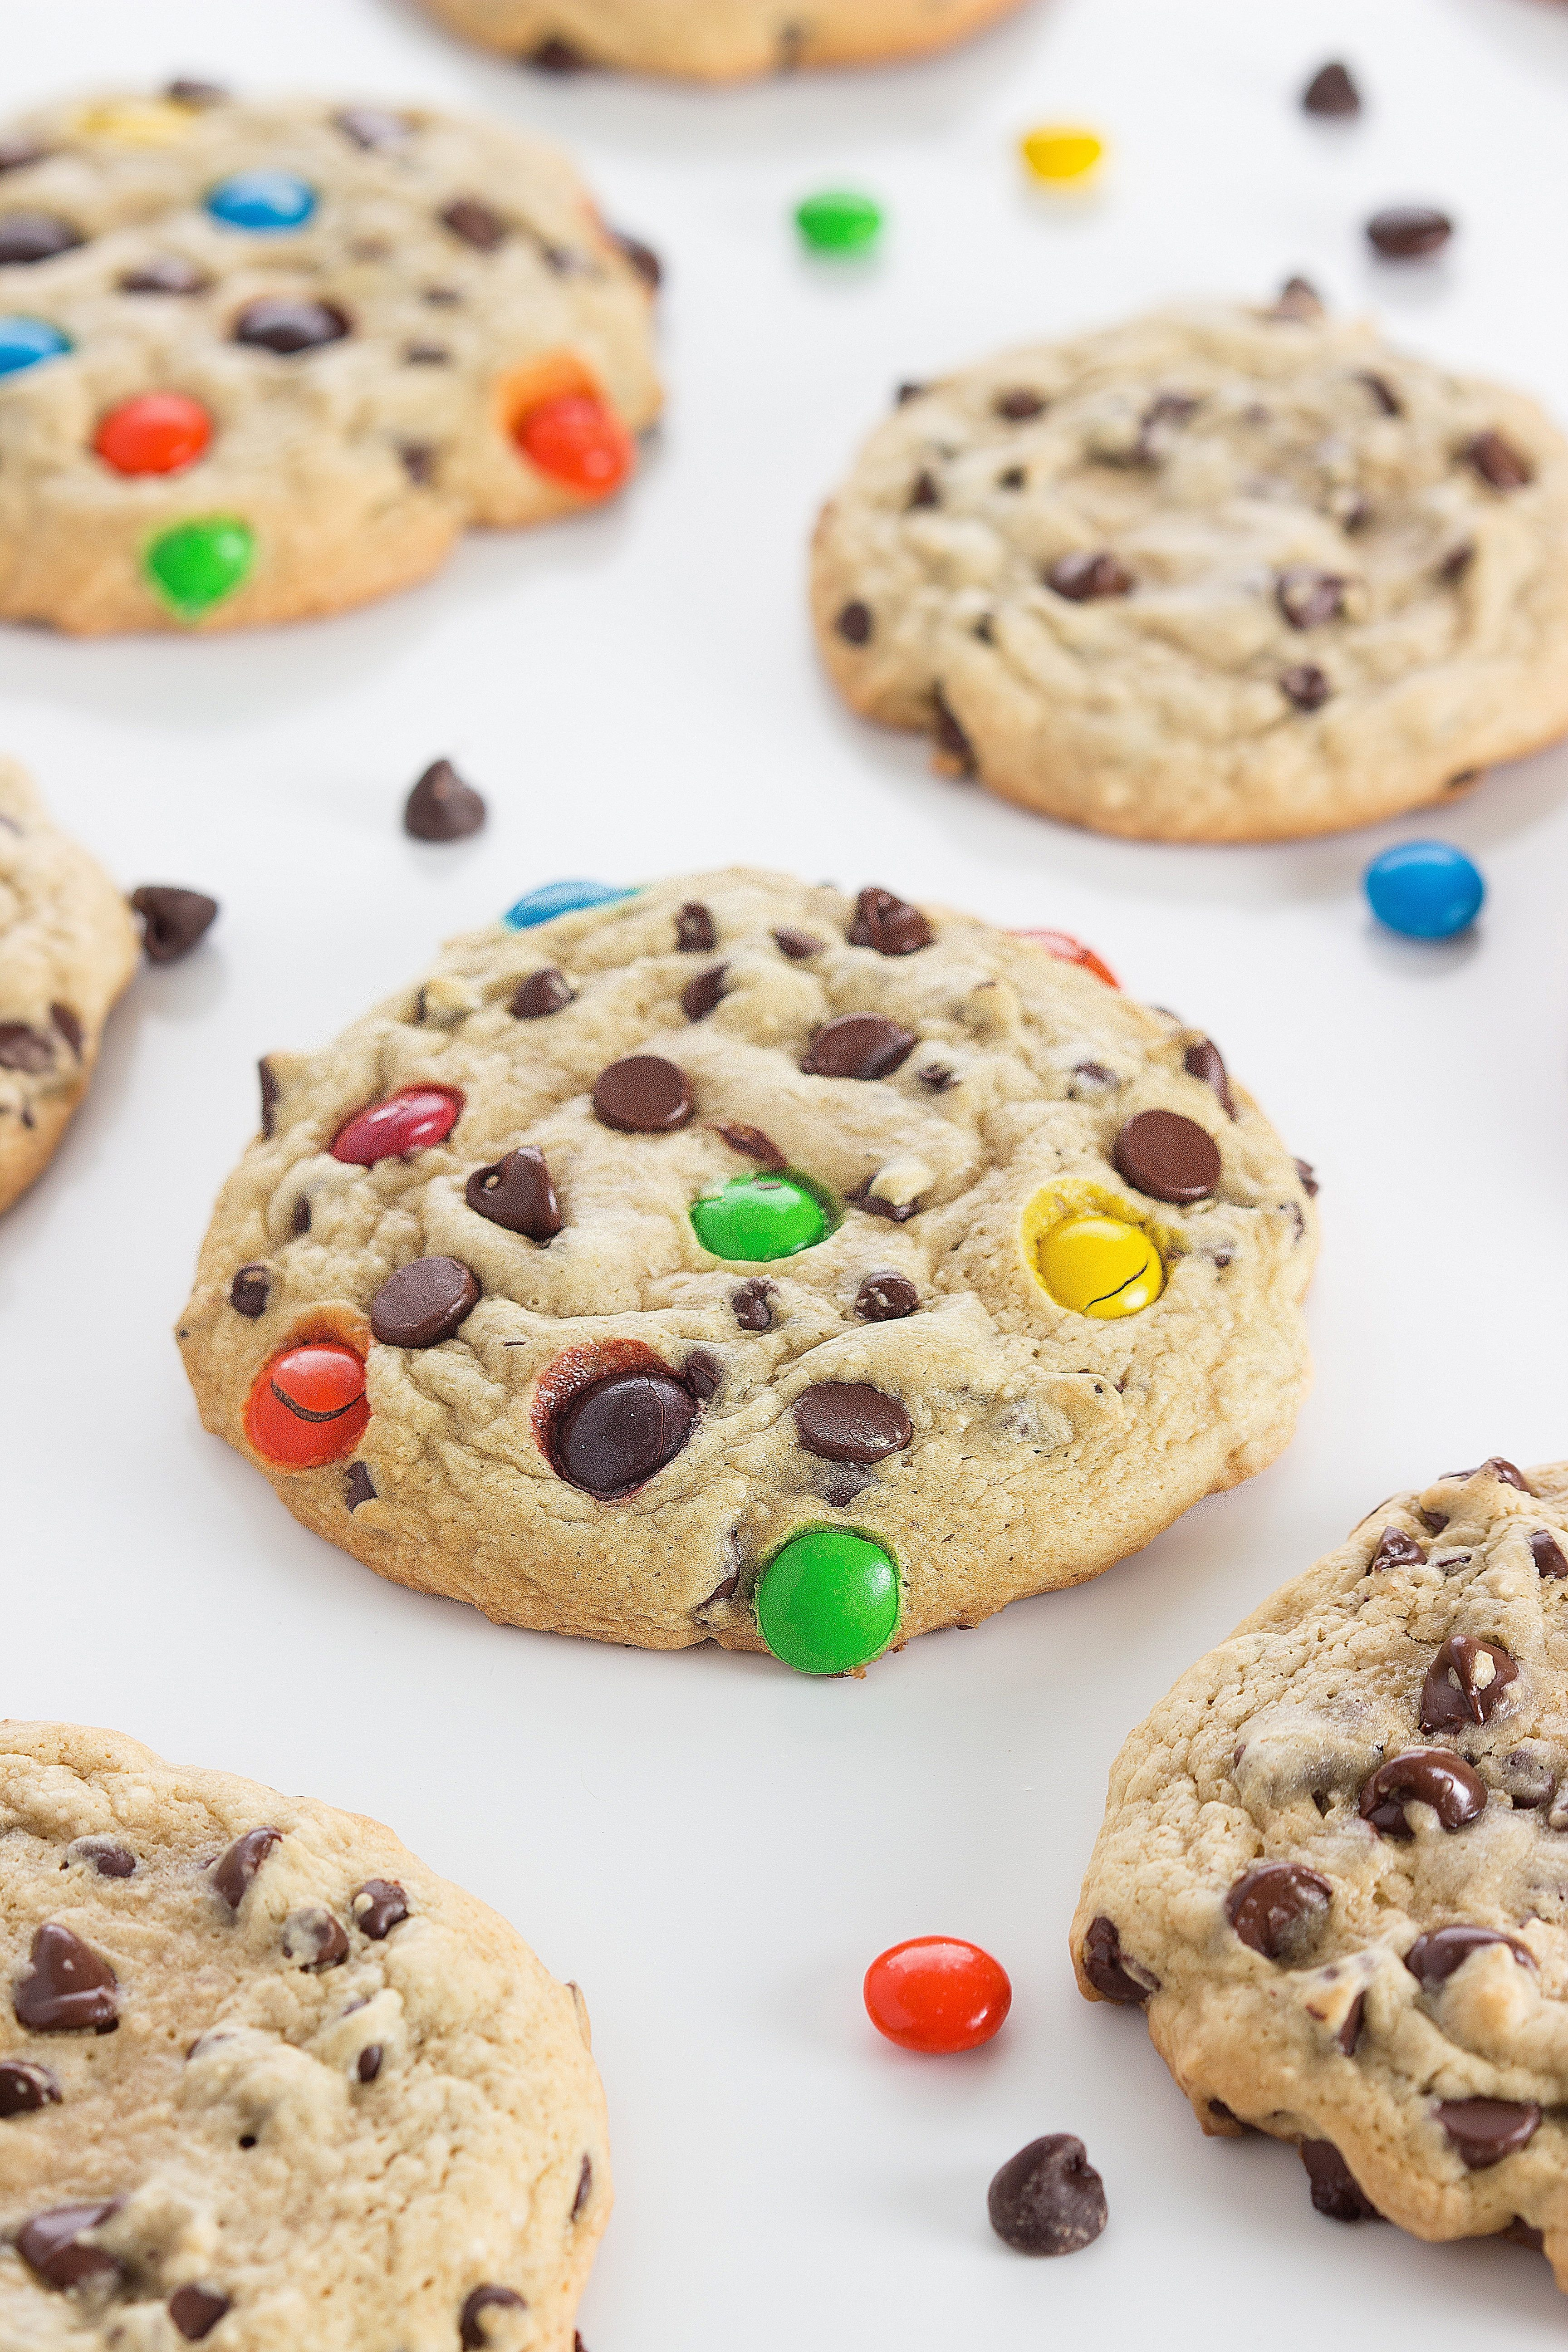 Secret Ingredient} Bakery-Style Chocolate Chip Cookies - Chelsea's ...